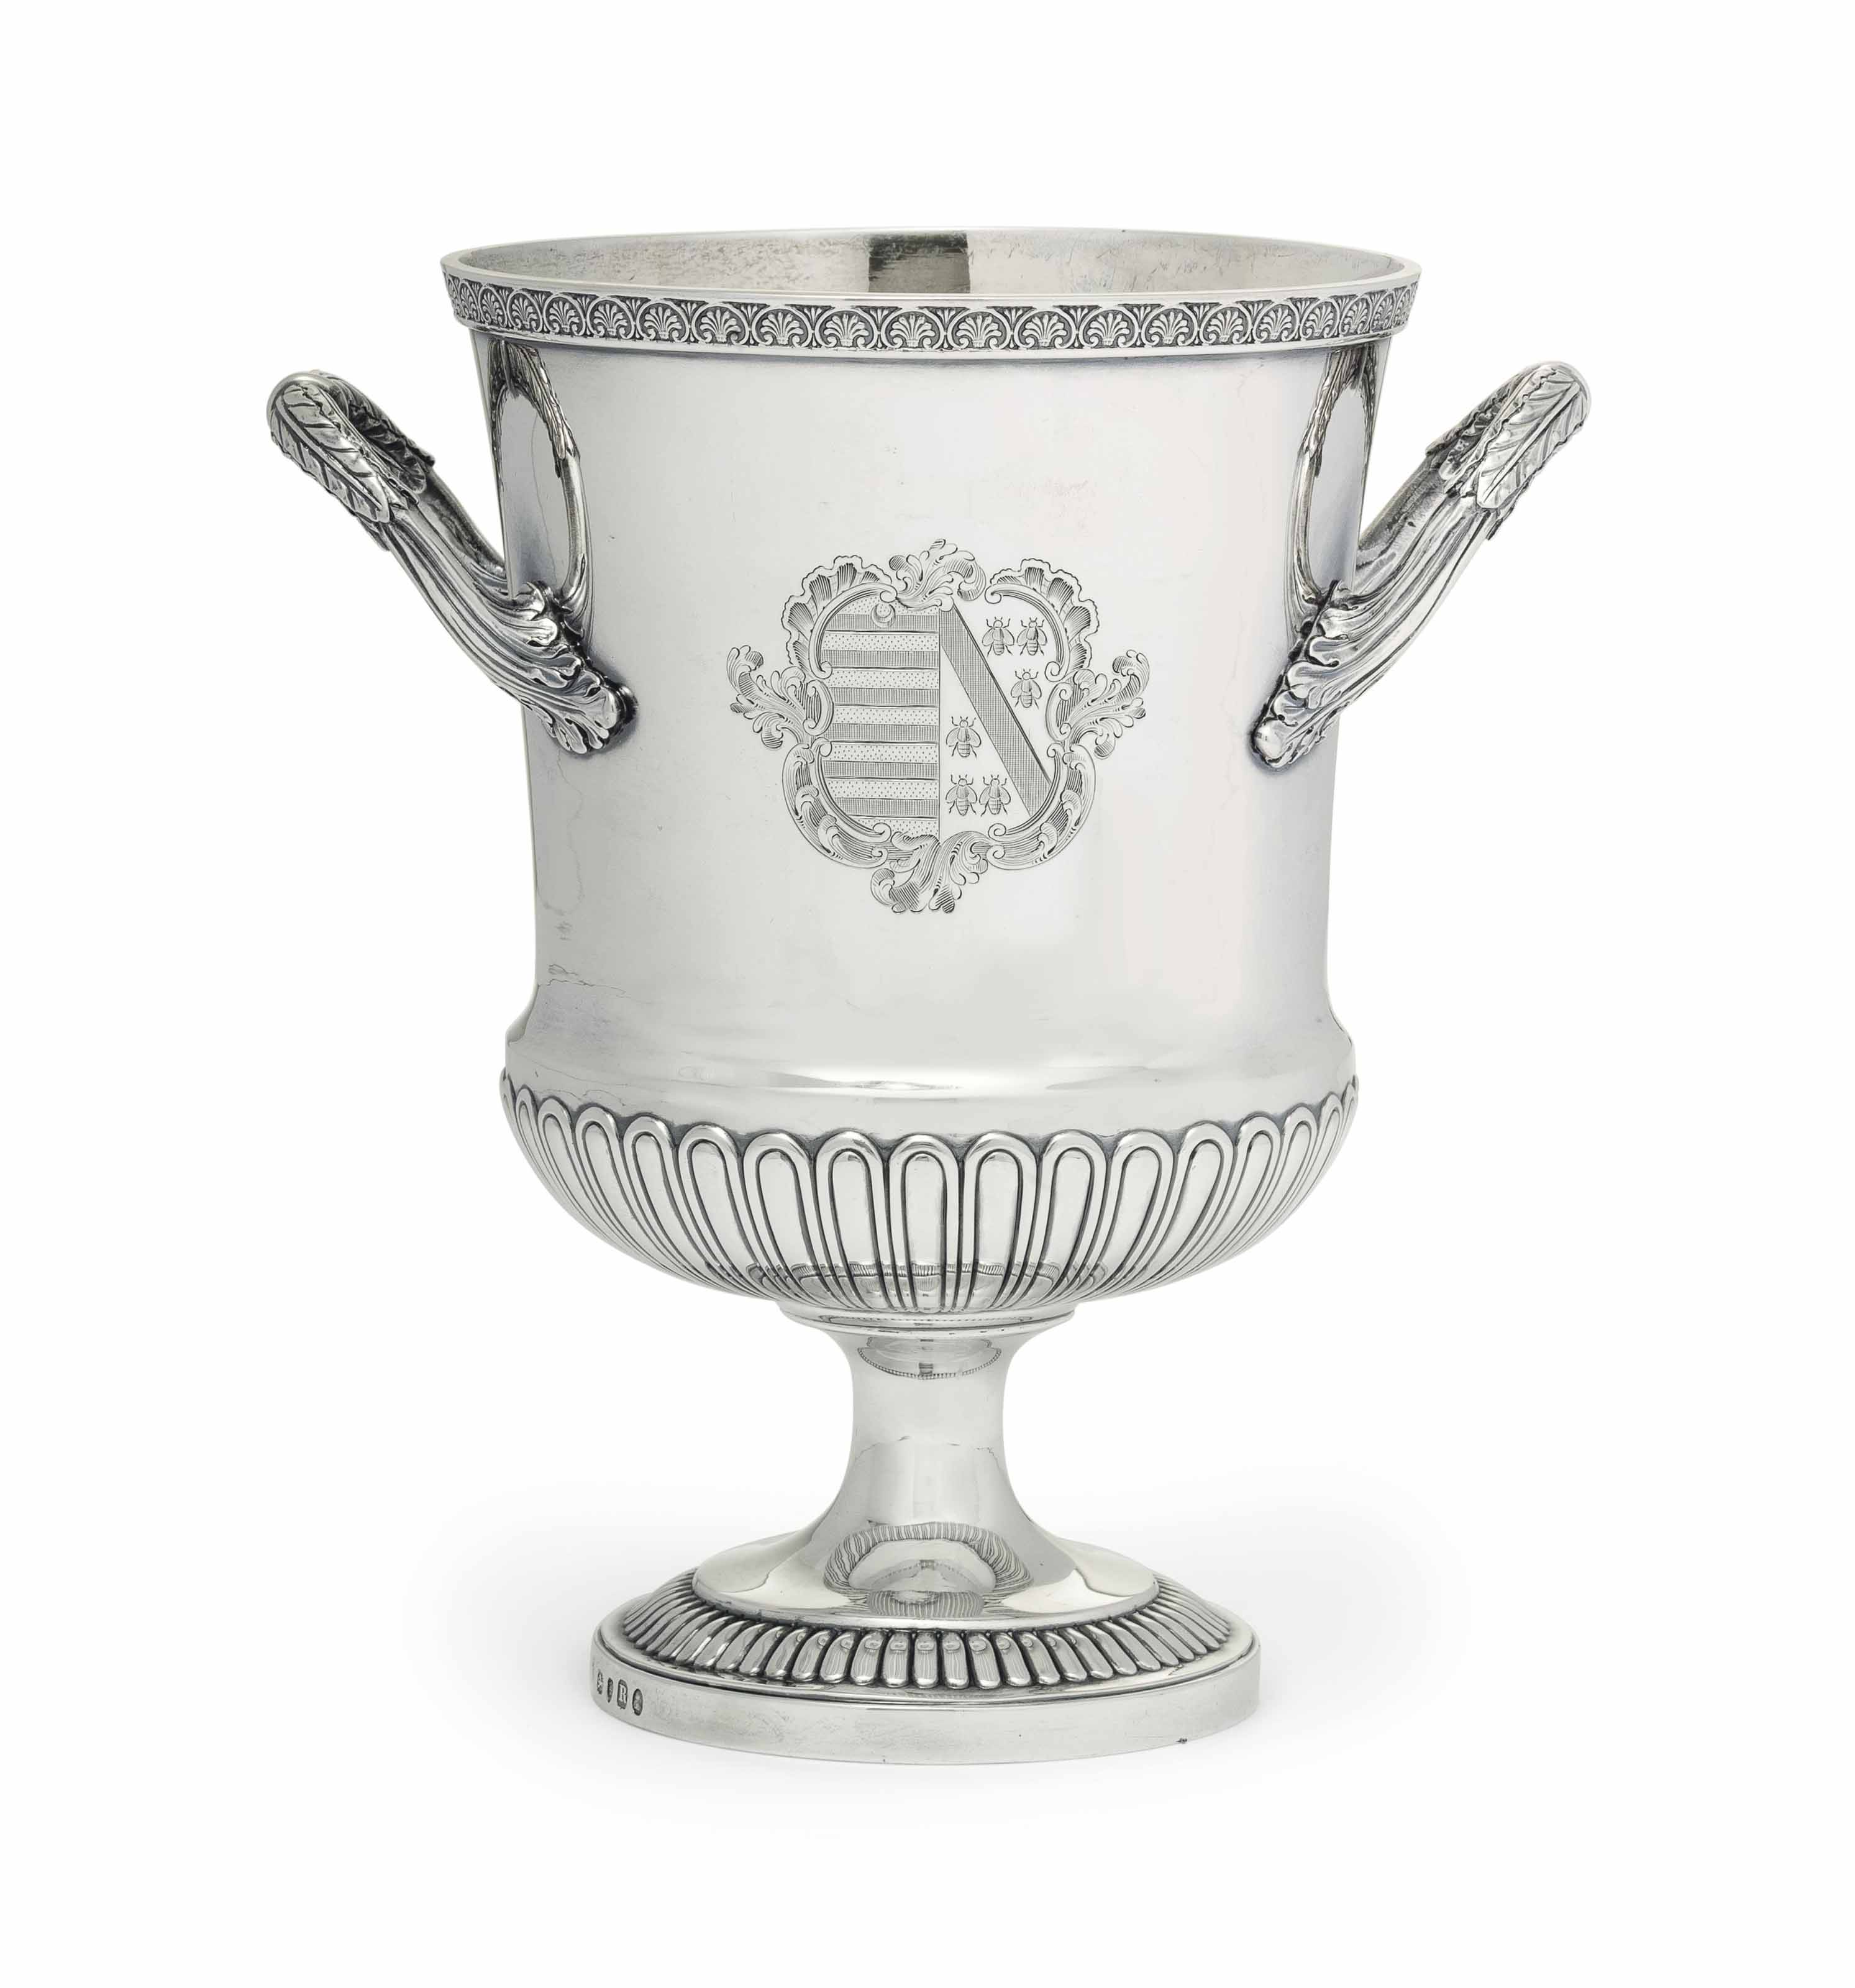 A REGENCY SILVER TWO-HANDLED CUP